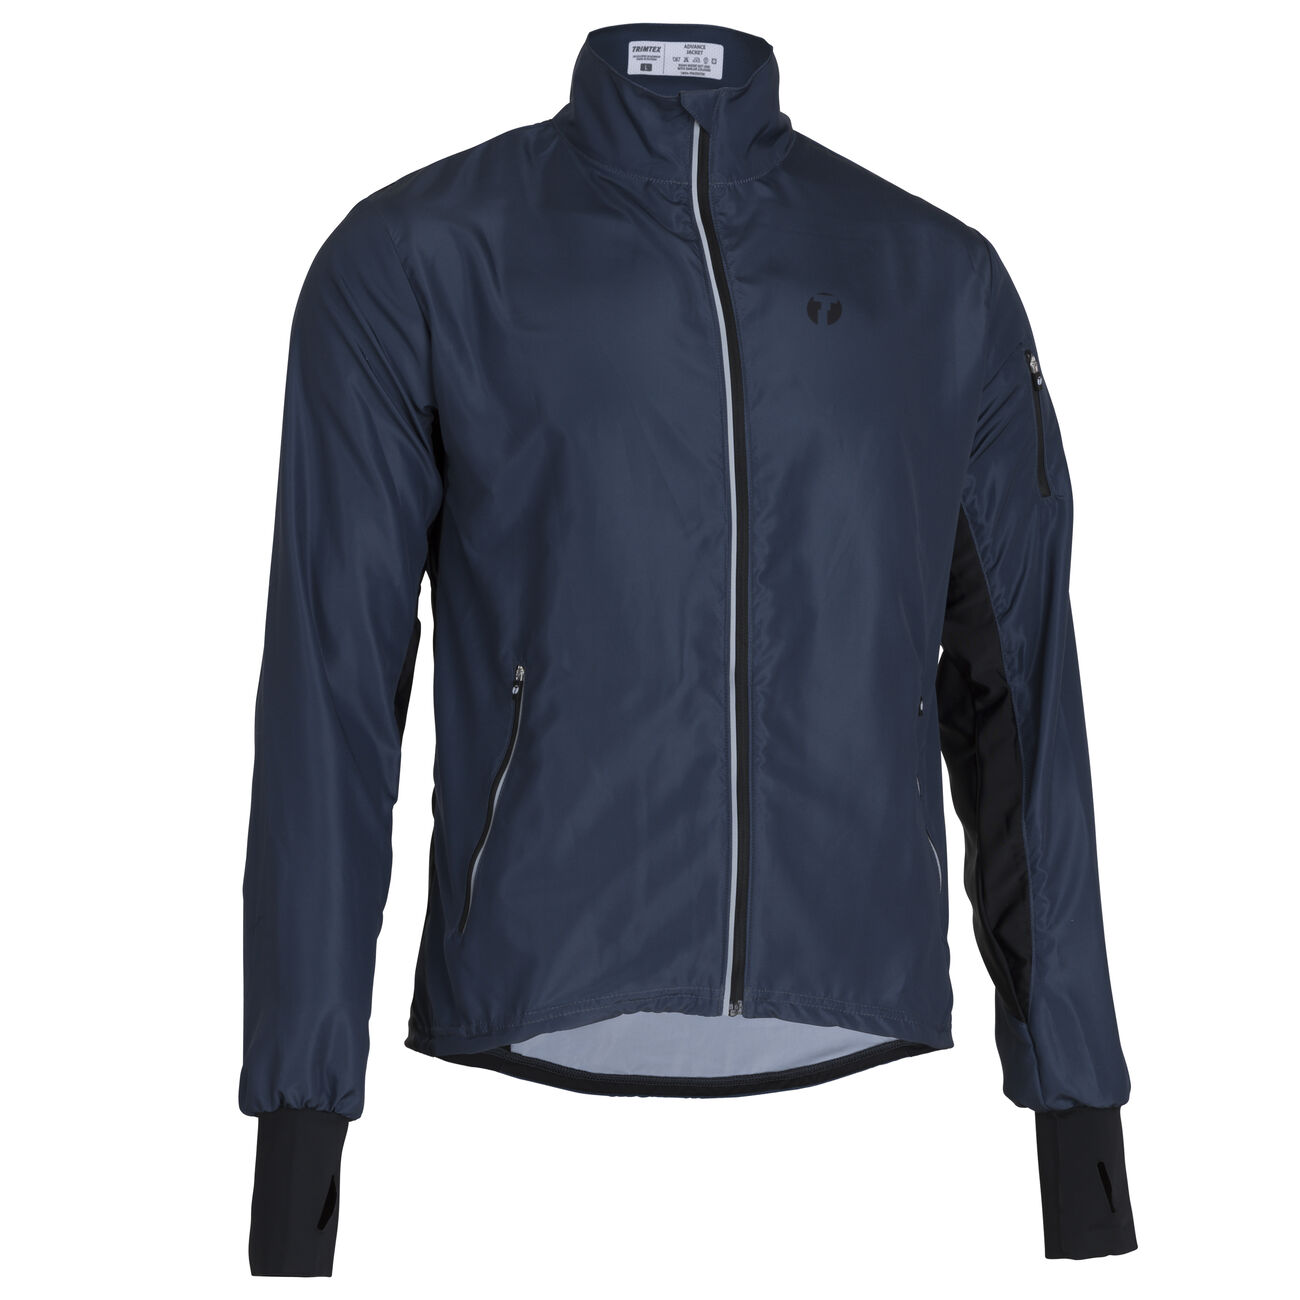 Advance running jacket men's